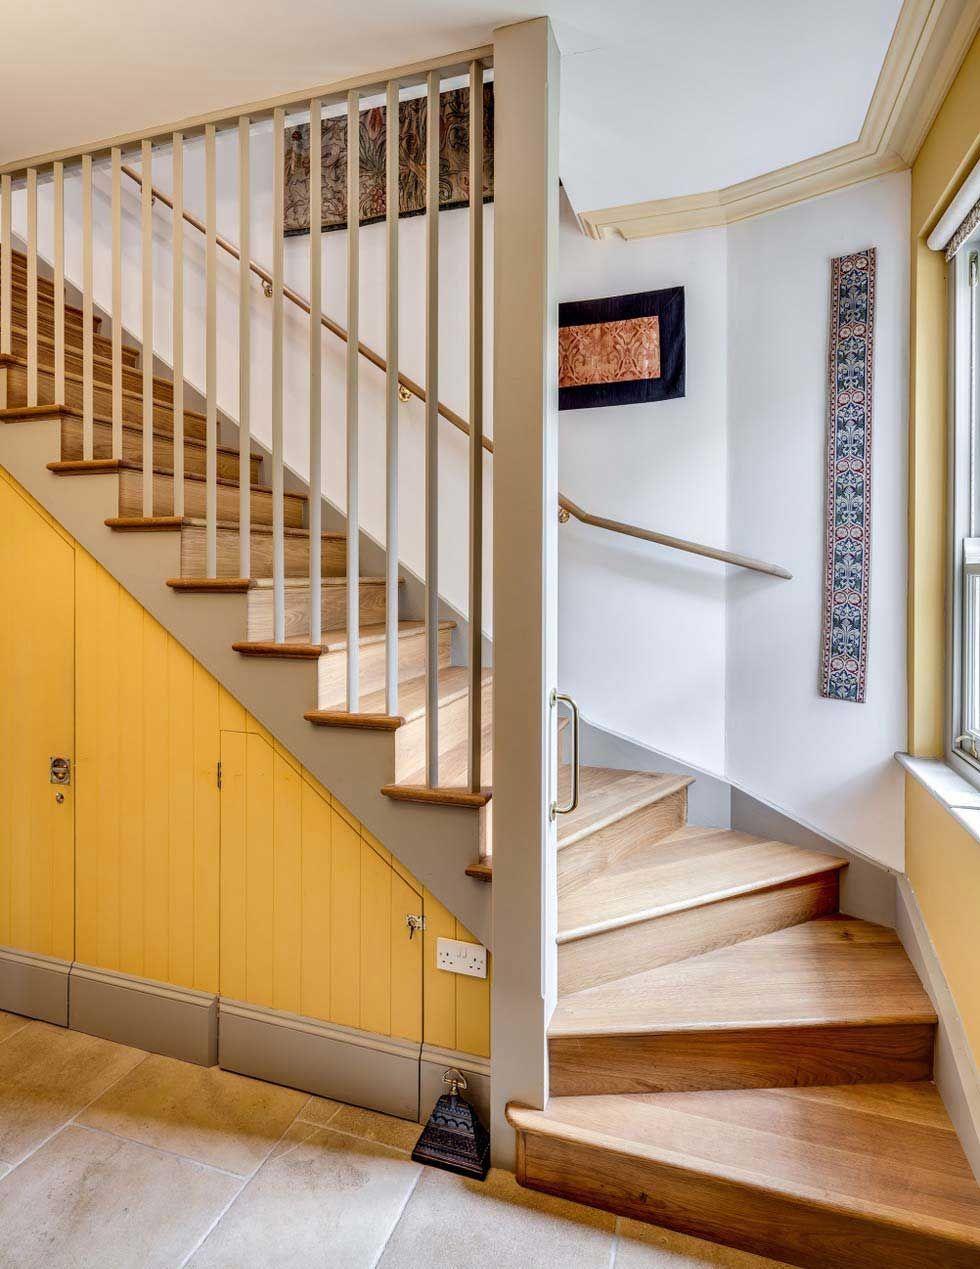 Pin By Craftysnipe On Foyer In 2020 Stairs Design Stair Bannister Ideas House Stairs